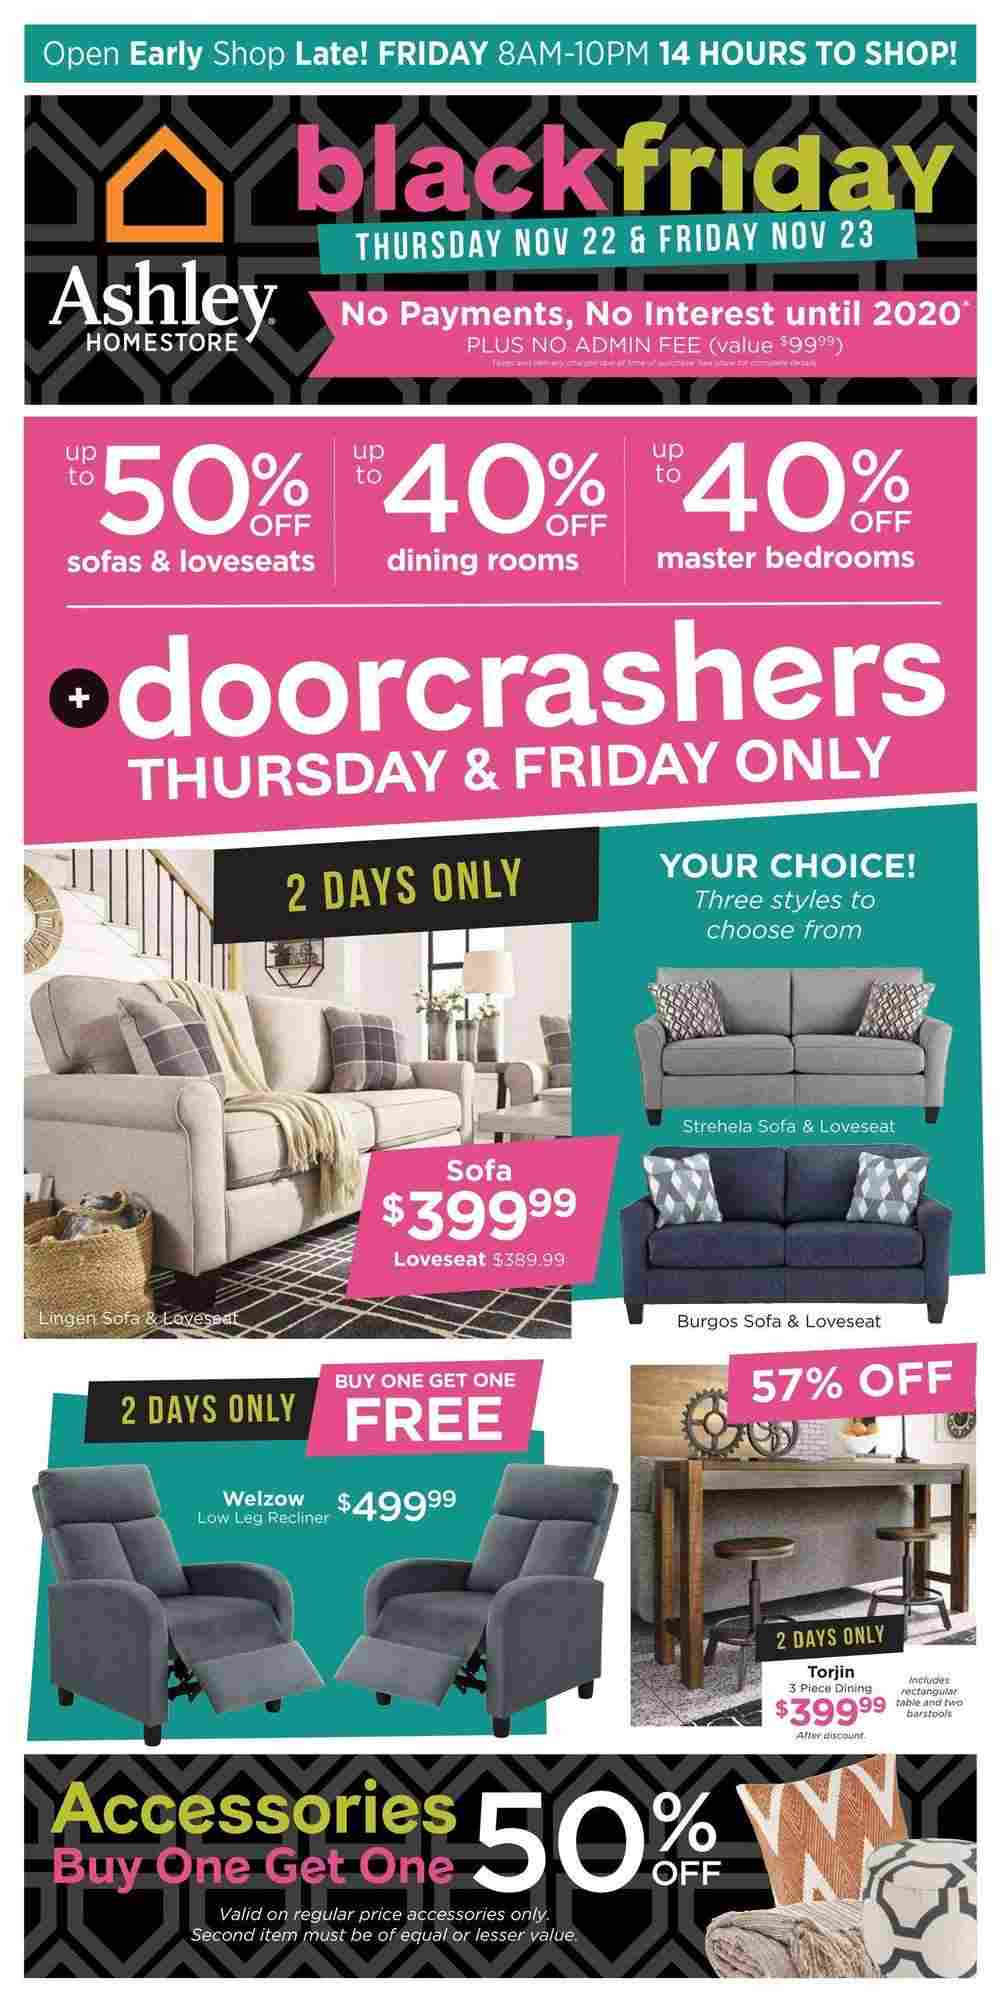 Ashley Furniture Homestore Flyer On Black Friday Sale November 22